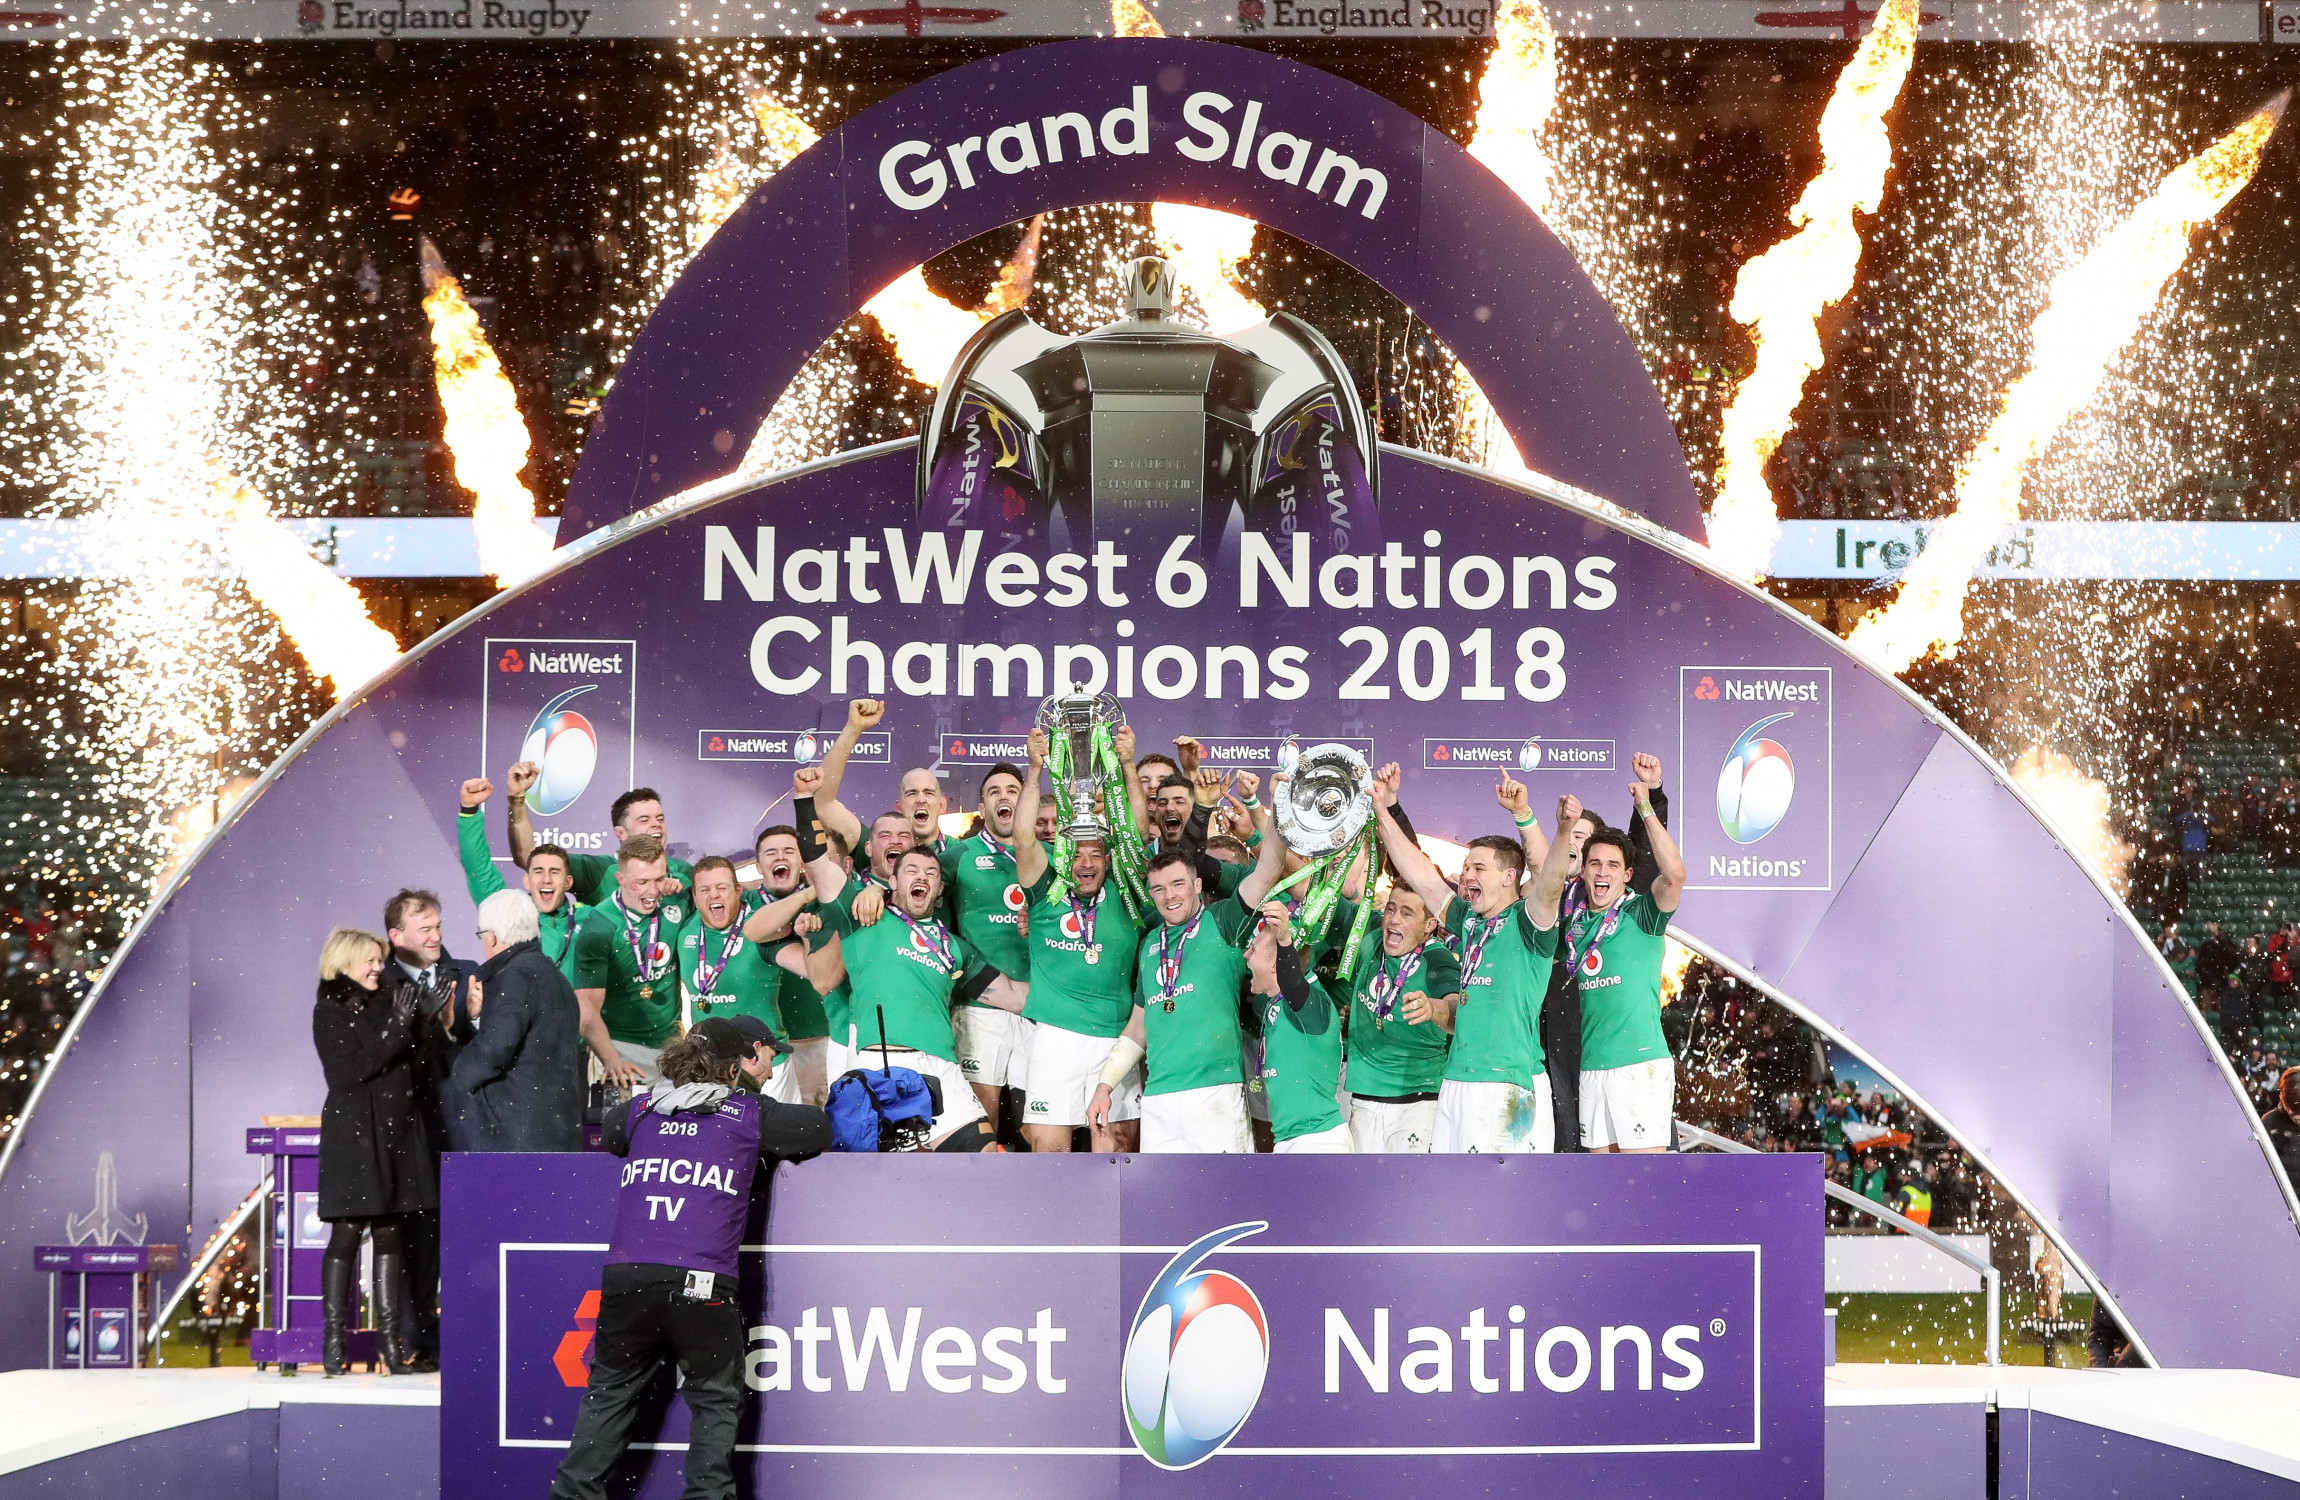 SIX NATIONS: I am living the dream says Ireland captain Rory Best